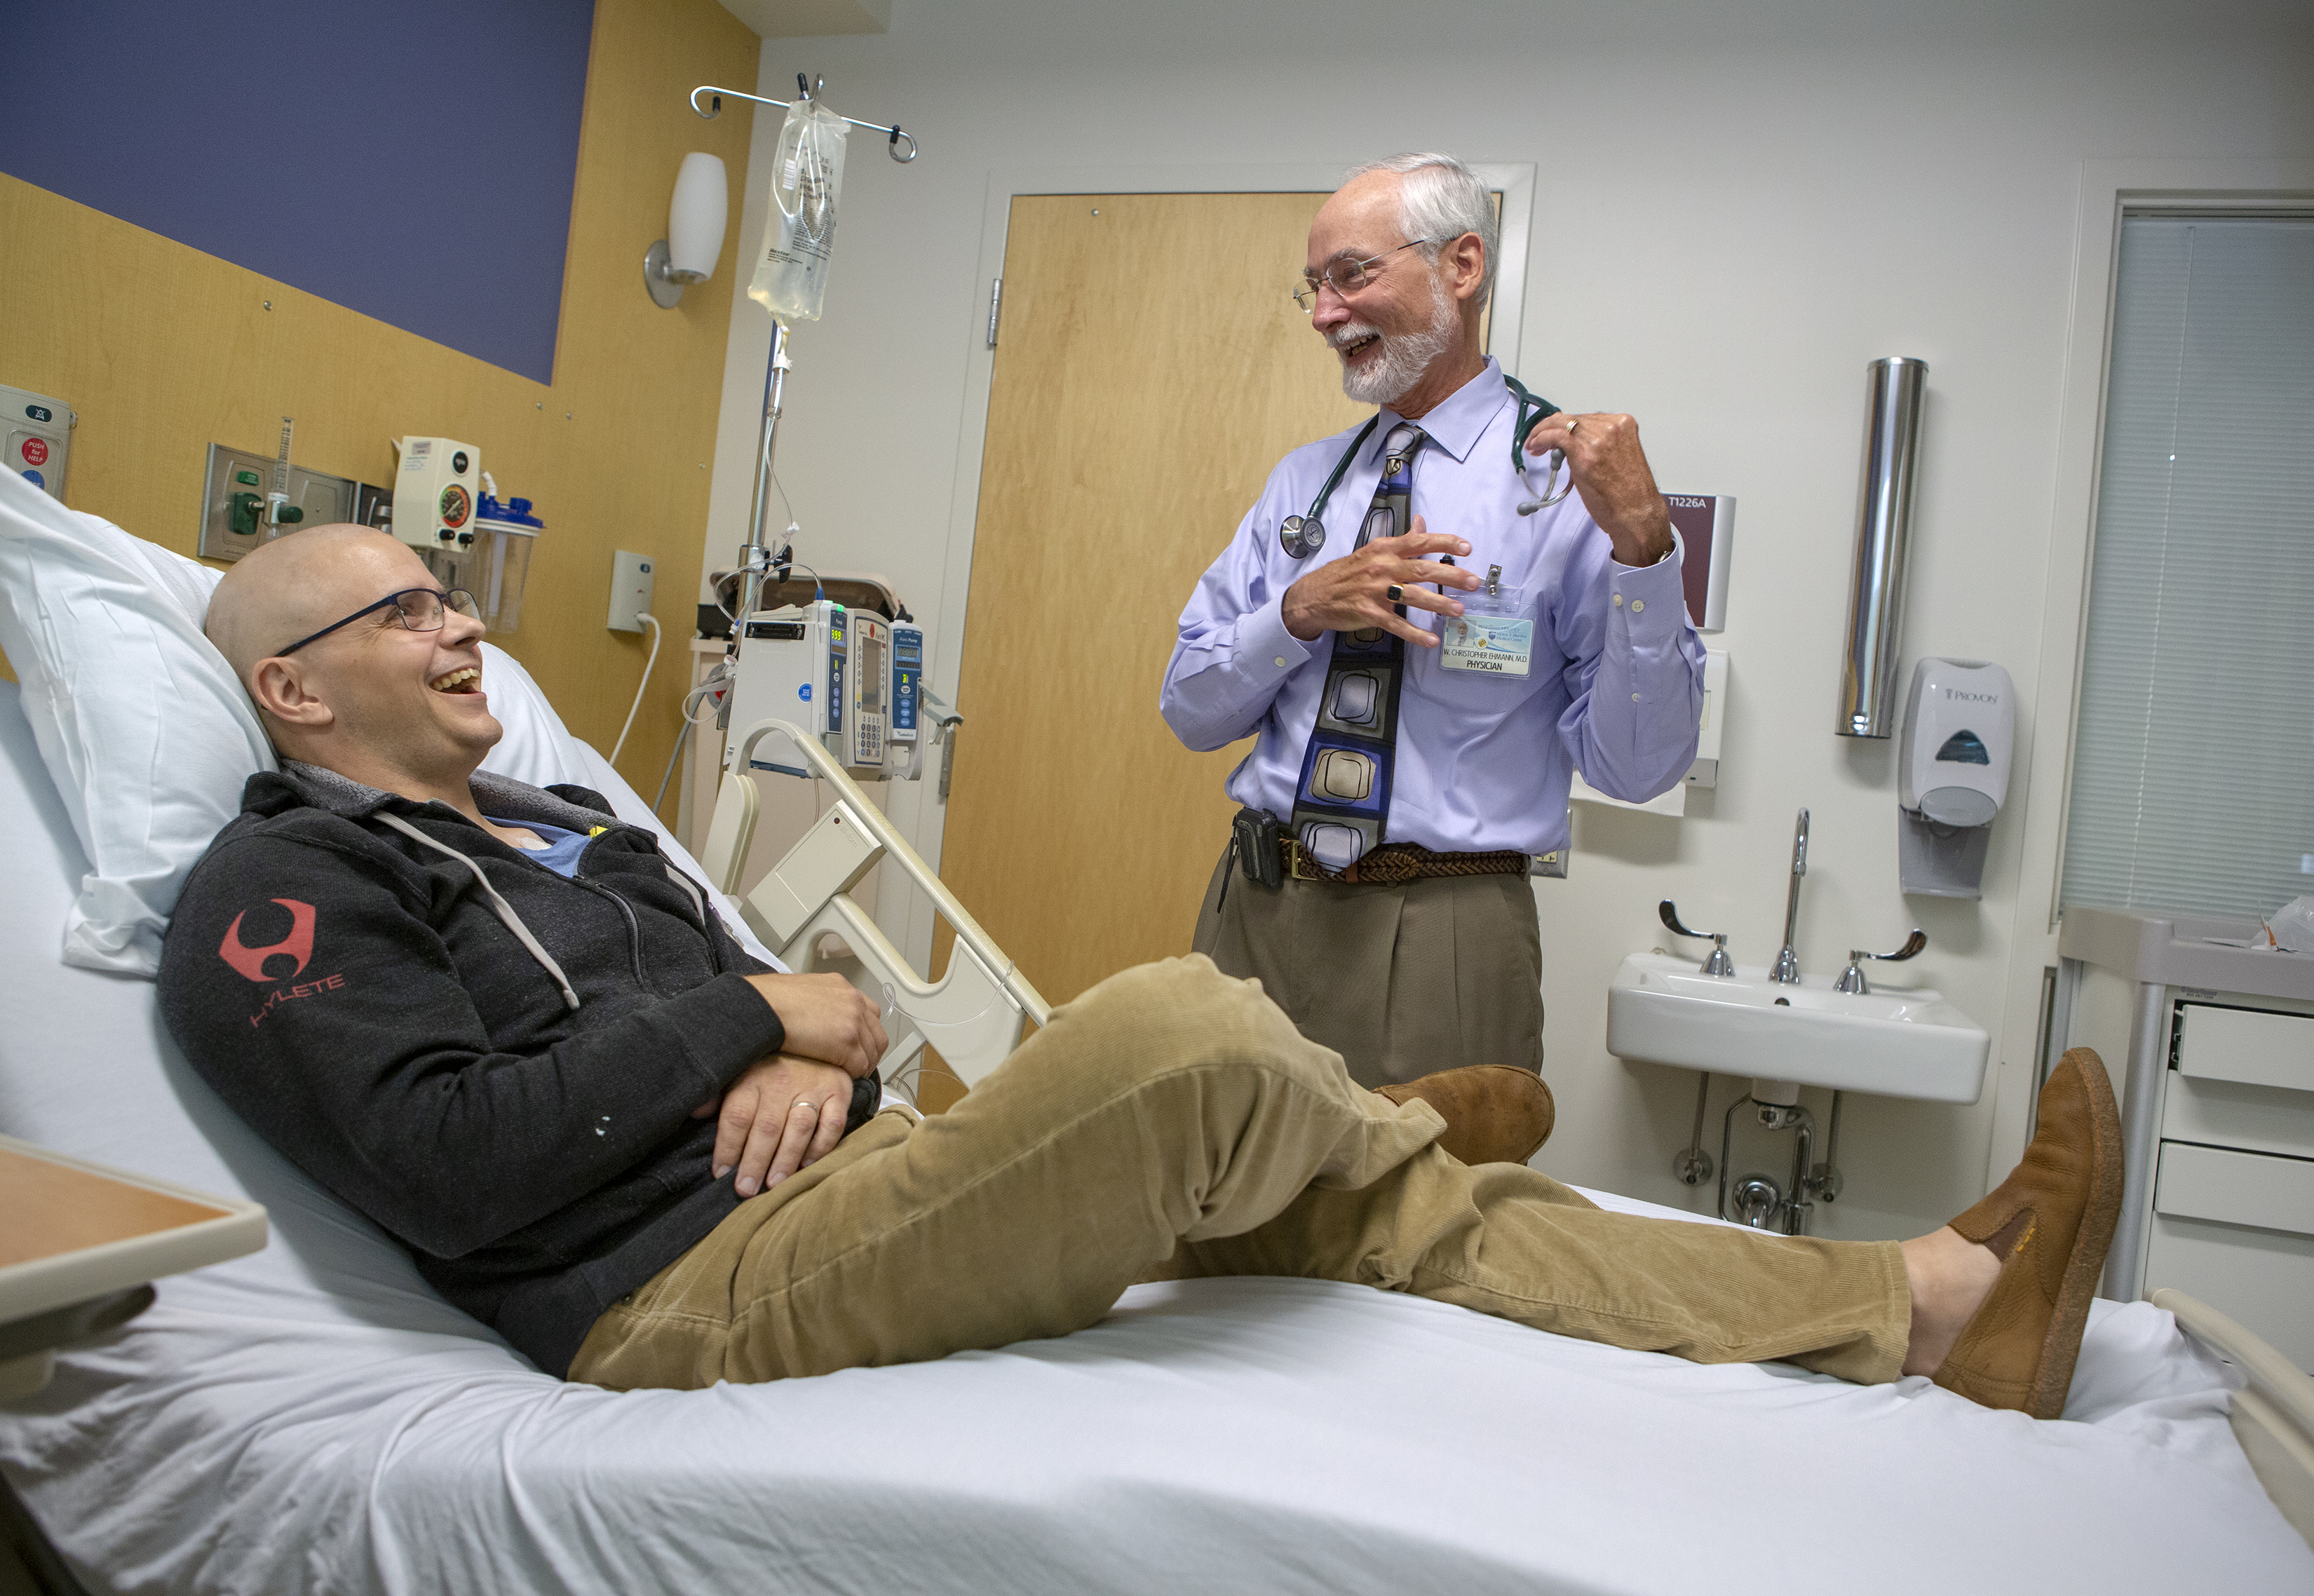 Tim Card and Dr. Christopher Ehmann smile. Tim is sitting propped up in a hospital bed wearing glasses and dressed in a sweatshirt, corduroy pants and shoes. An IV bag is Dr. Ehmann has a beard and is wearing shirt, tie, khaki pants and an ID badge and has a stethoscope around his neck.